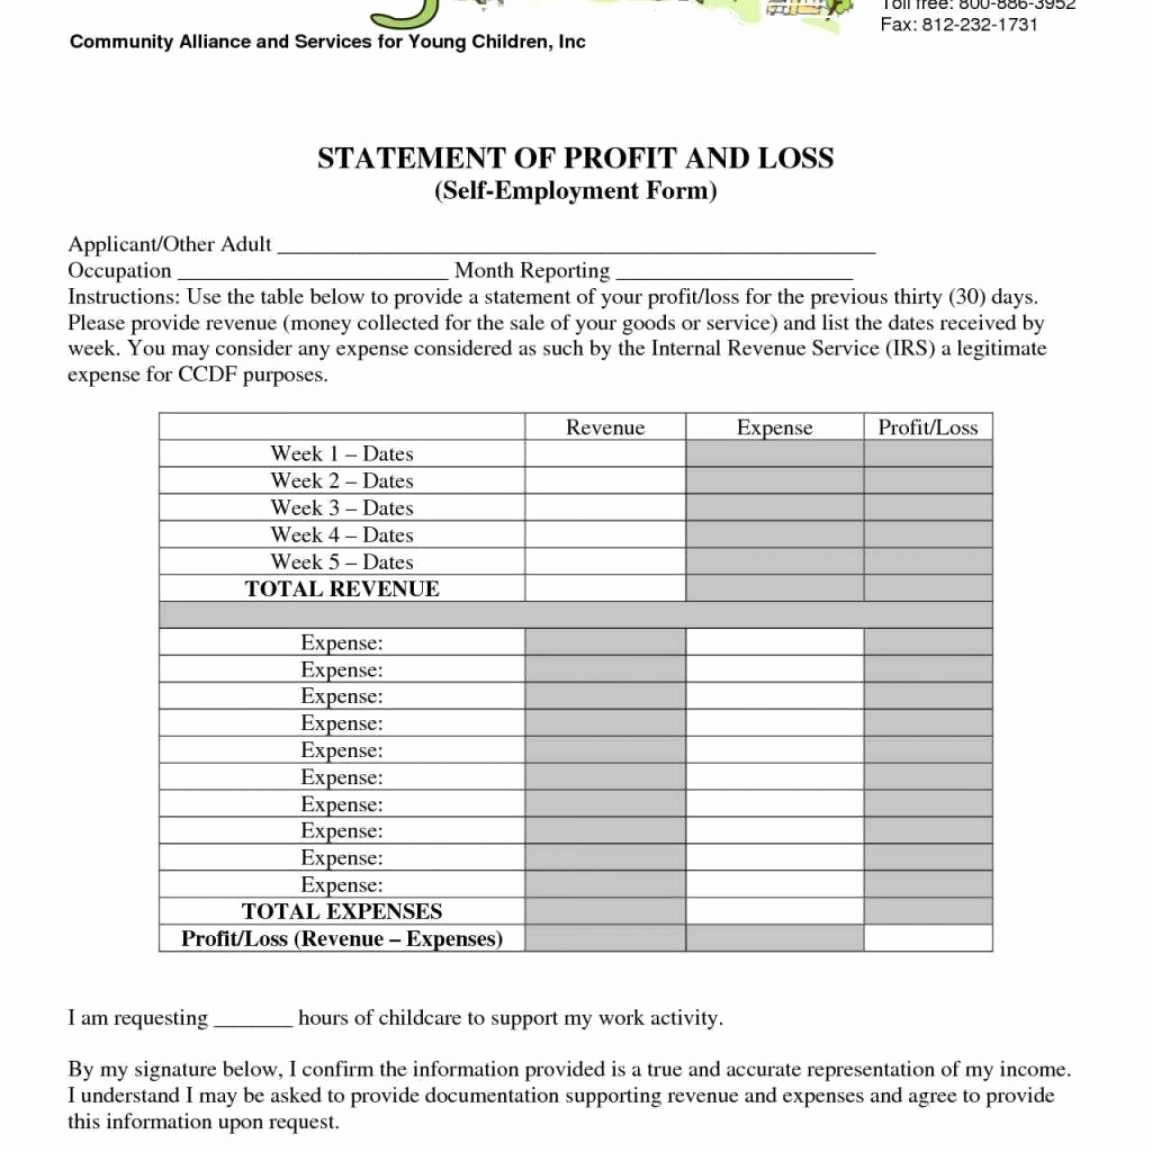 Church Income and Expense Statement Template Elegant Daycare Profit and Loss Statement Template and Daycare